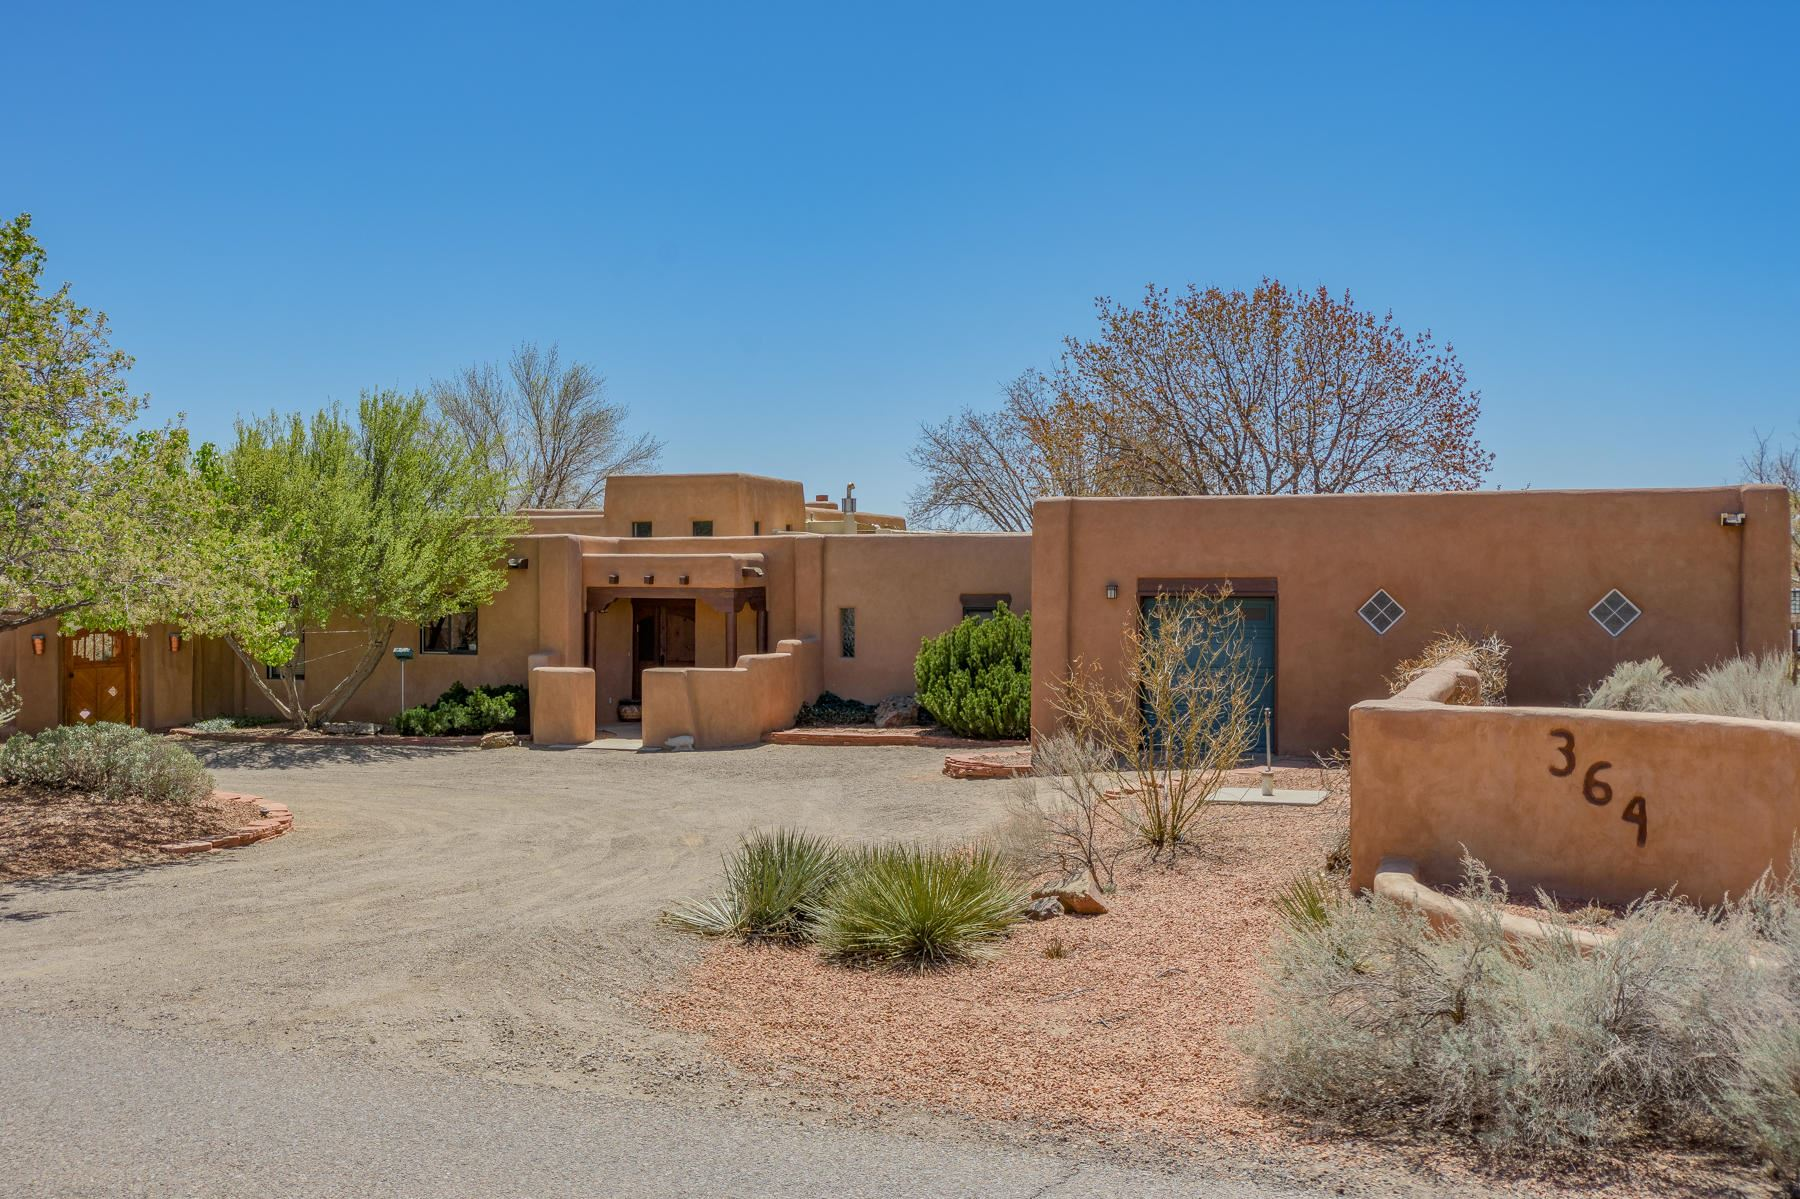 Photo of 364 MISSION VALLEY Road, Corrales, NM 87048 (MLS # 989589)